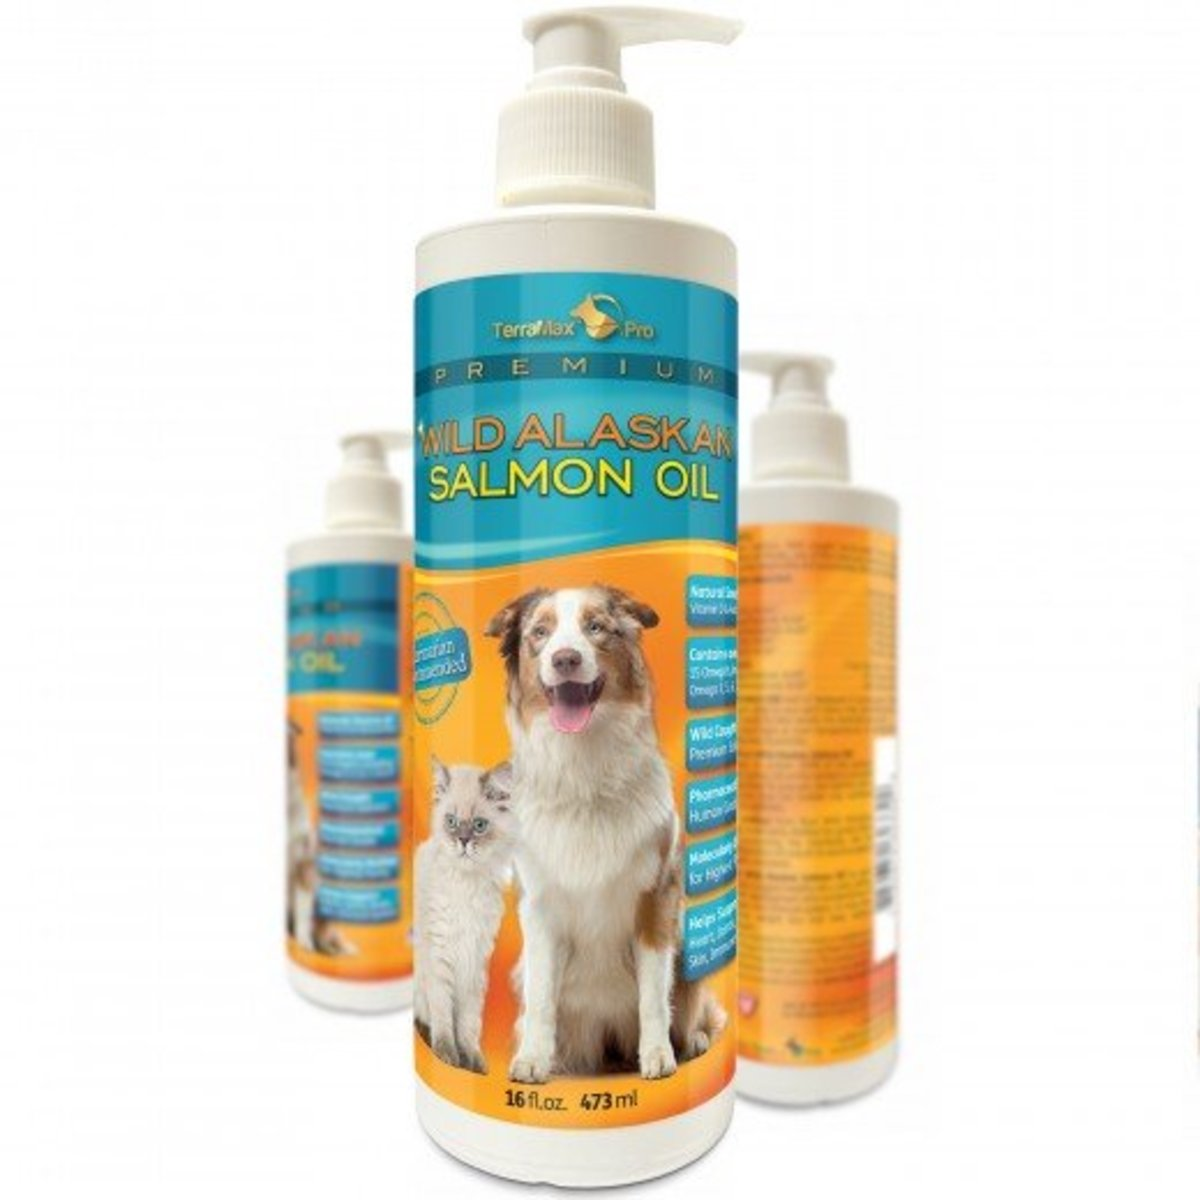 My Review of Premium Wild Alaskan Salmon Oil for Dogs and Cats